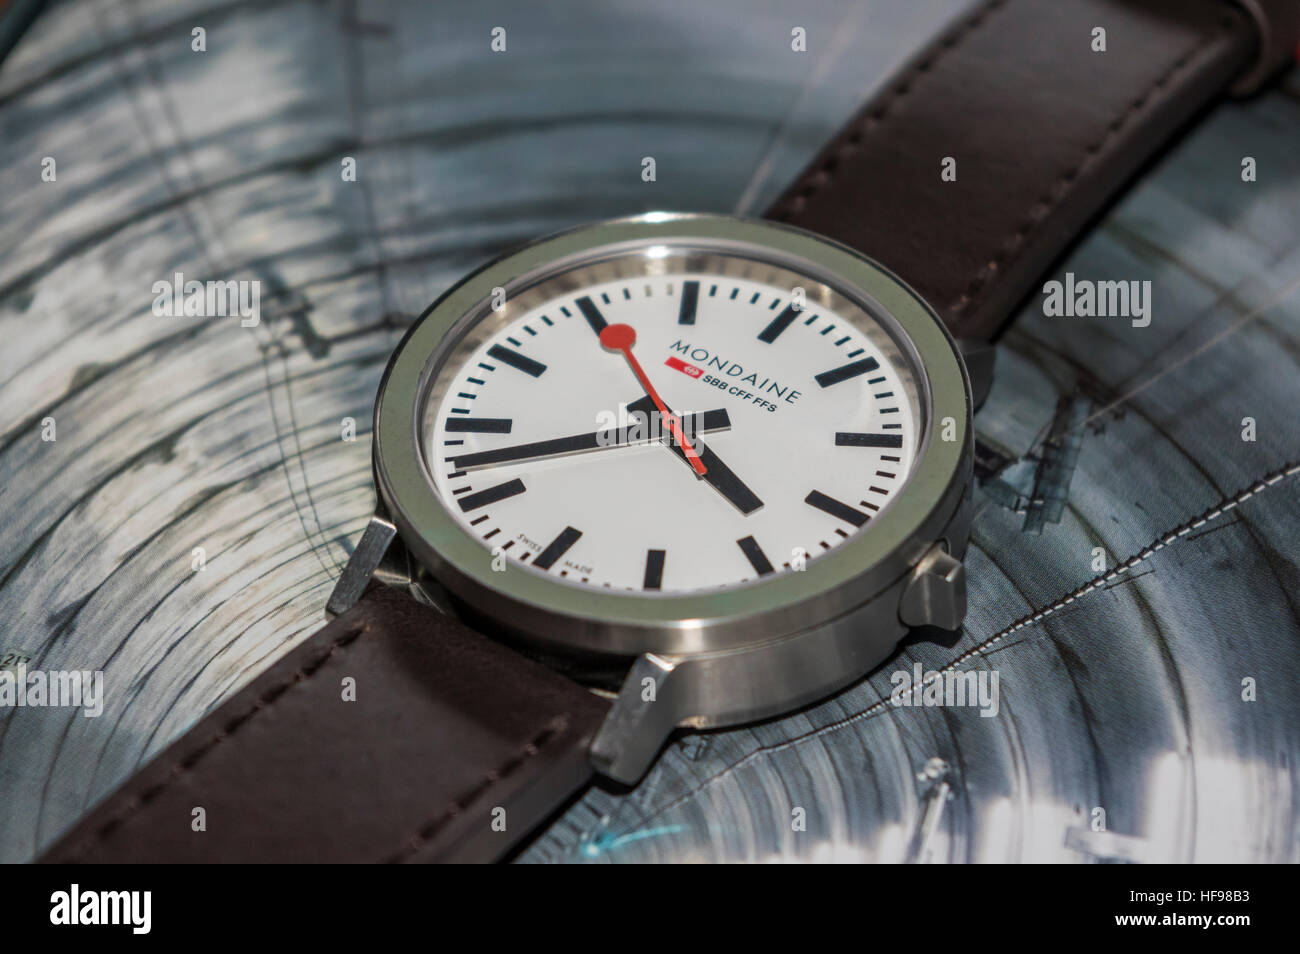 Mondaine stop2go, the Official Swiss Railways Watch. Gottardo 2016 edition, commemorating the Gotthard base tunnel - Stock Image